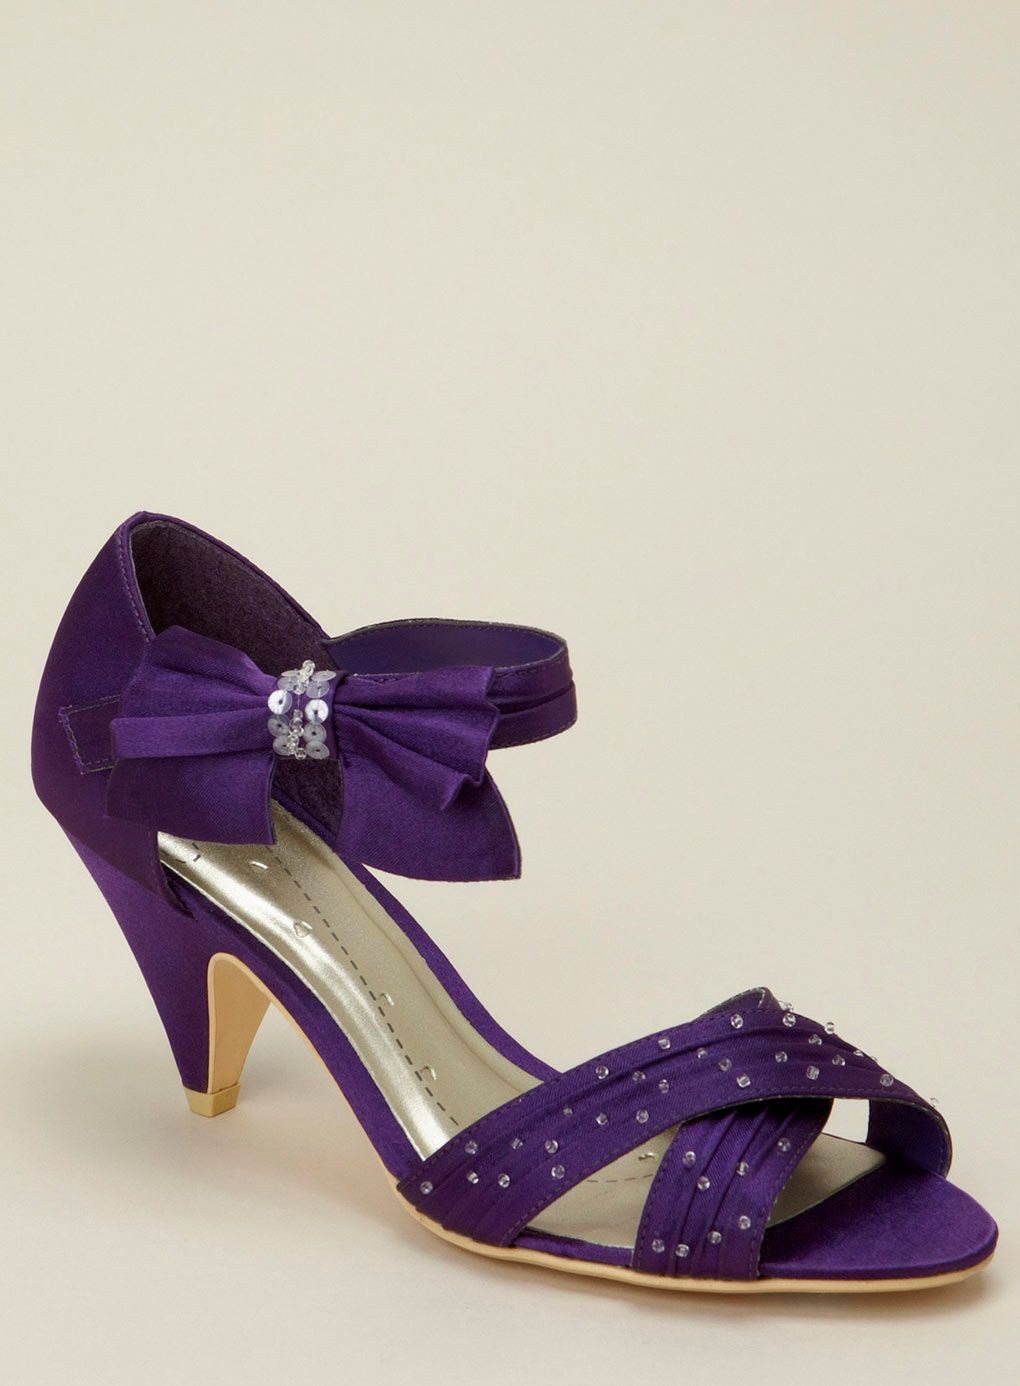 Purple Bridesmaid Shoes From BHS